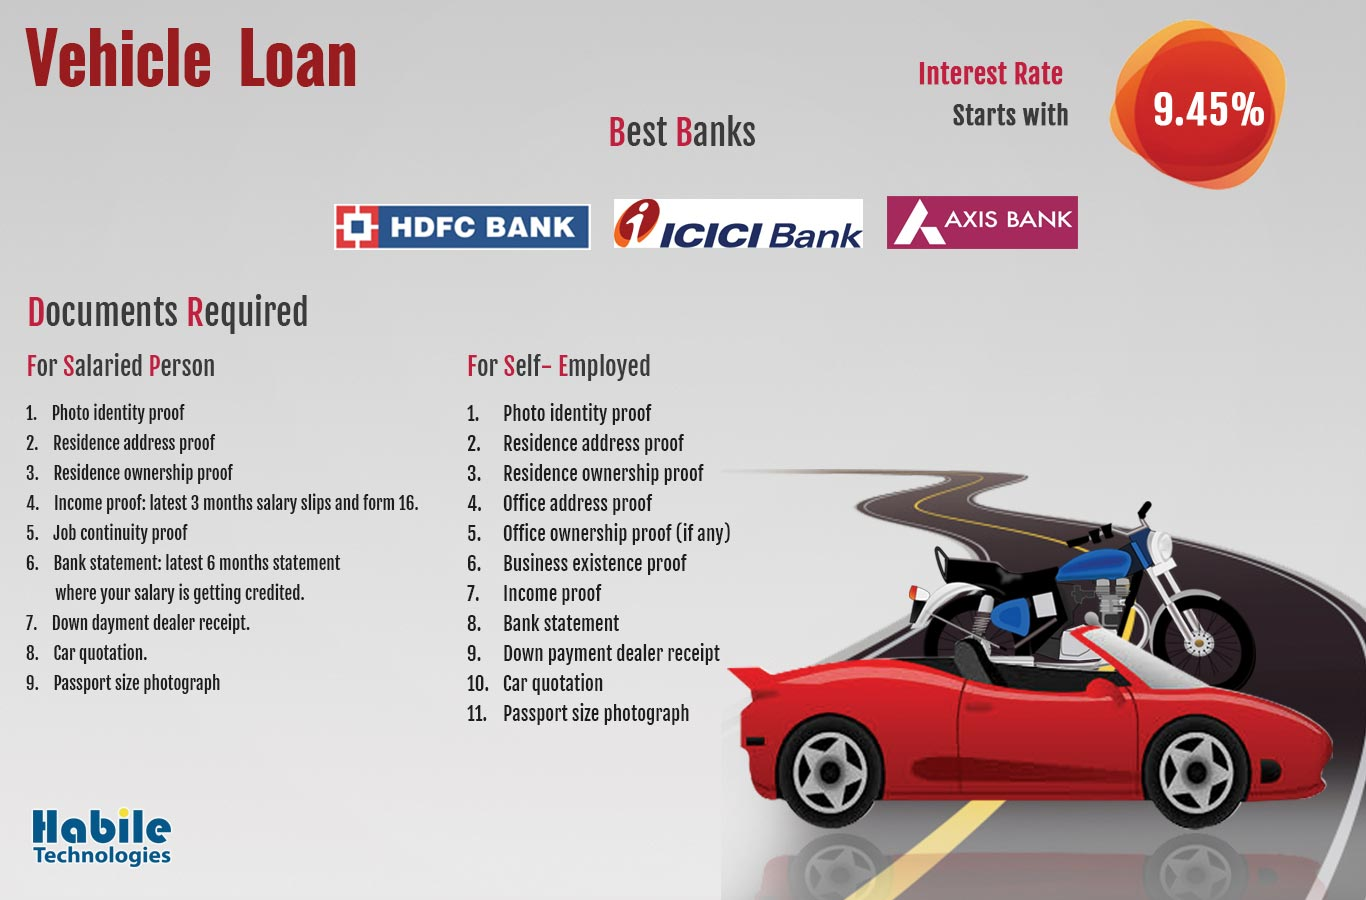 Documents required for Vehicle Loan